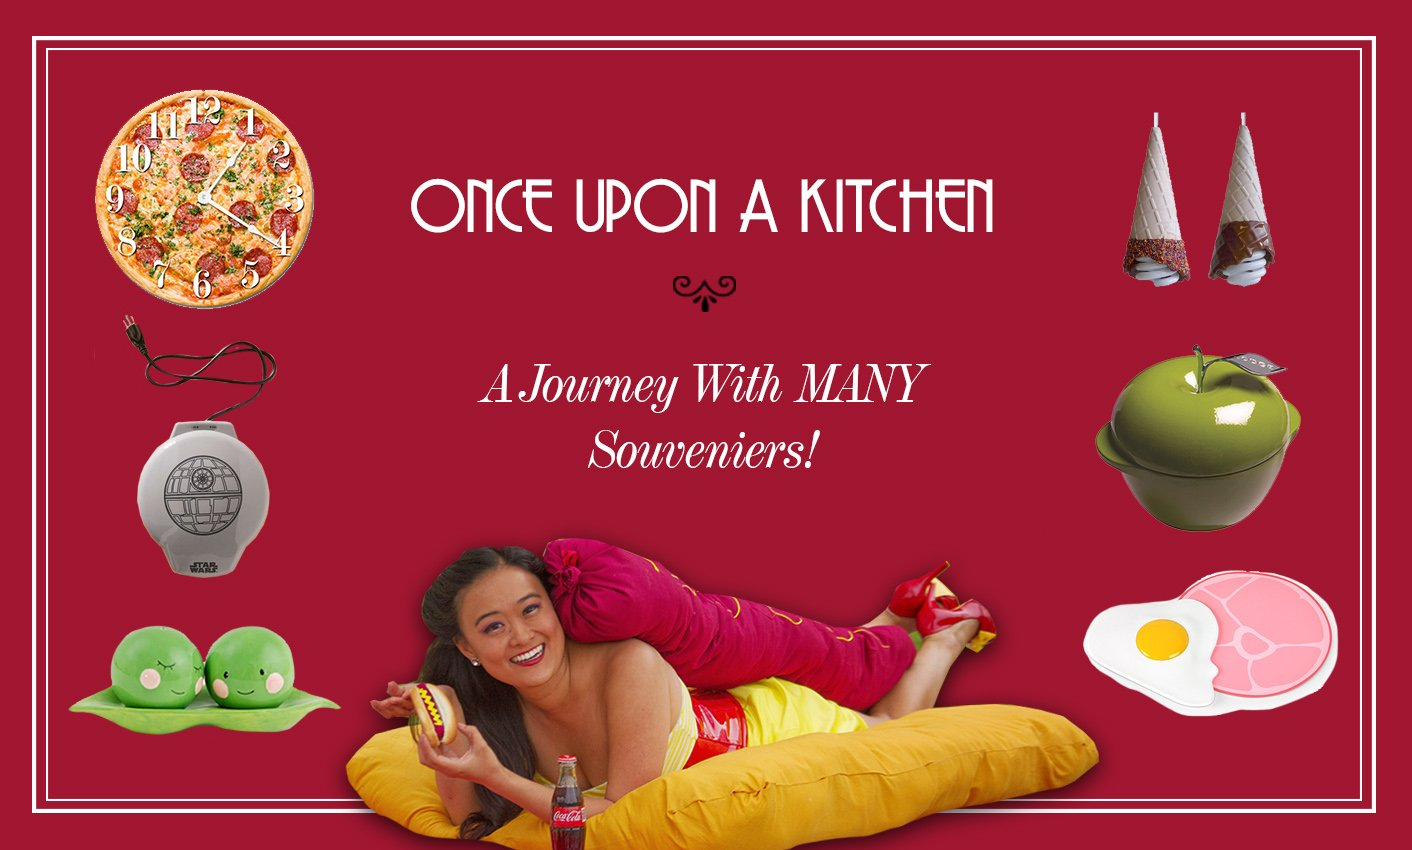 Once Upon A Kitchen: A Journey With Many Souveniers!